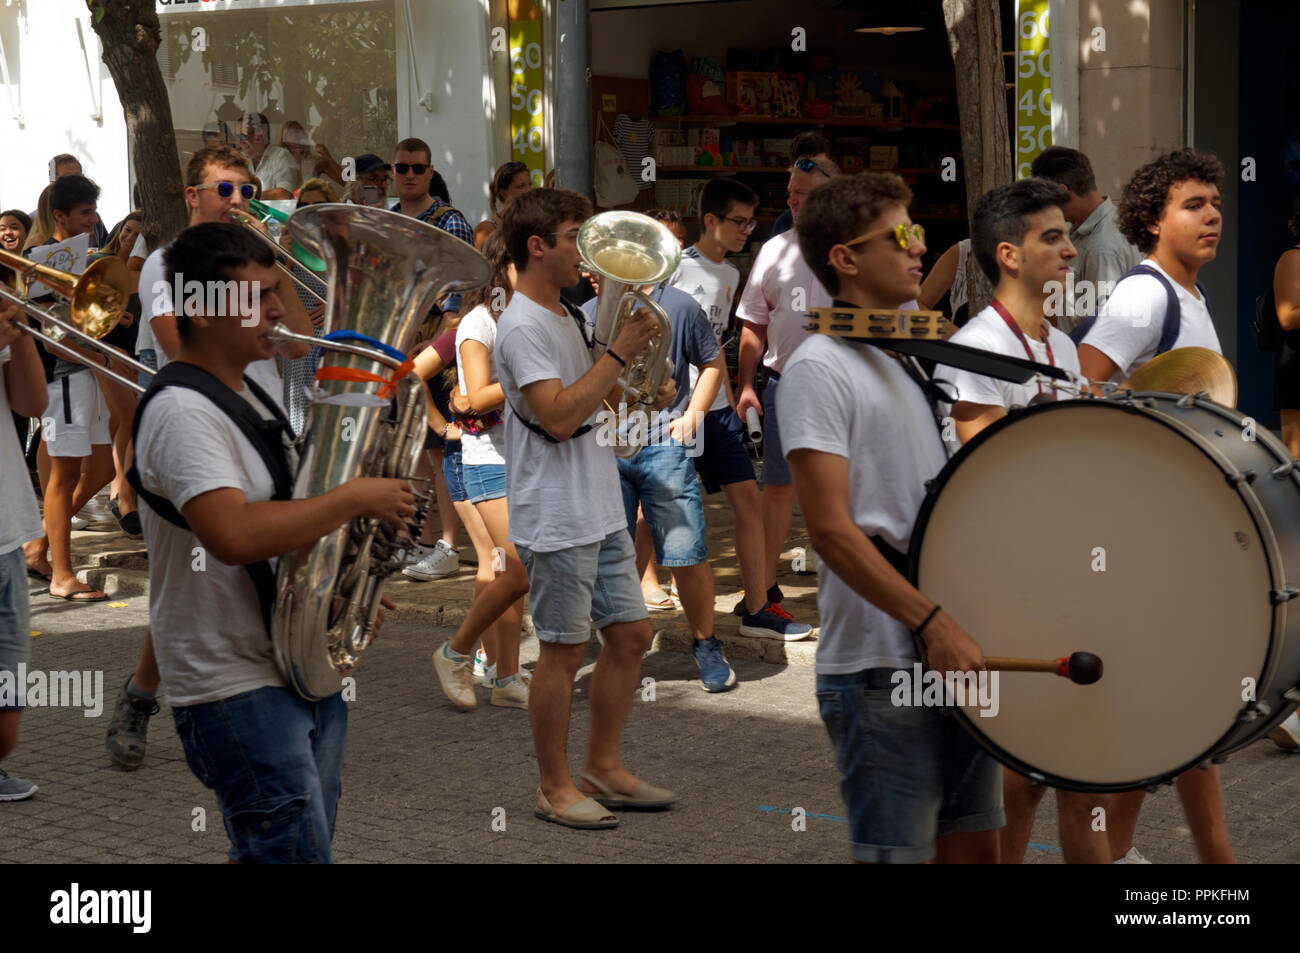 Youth Marching Band Stock Photos Images Mao Baby Music Cellular Phone Mare De Du Grcia Festival Mahon Menorca